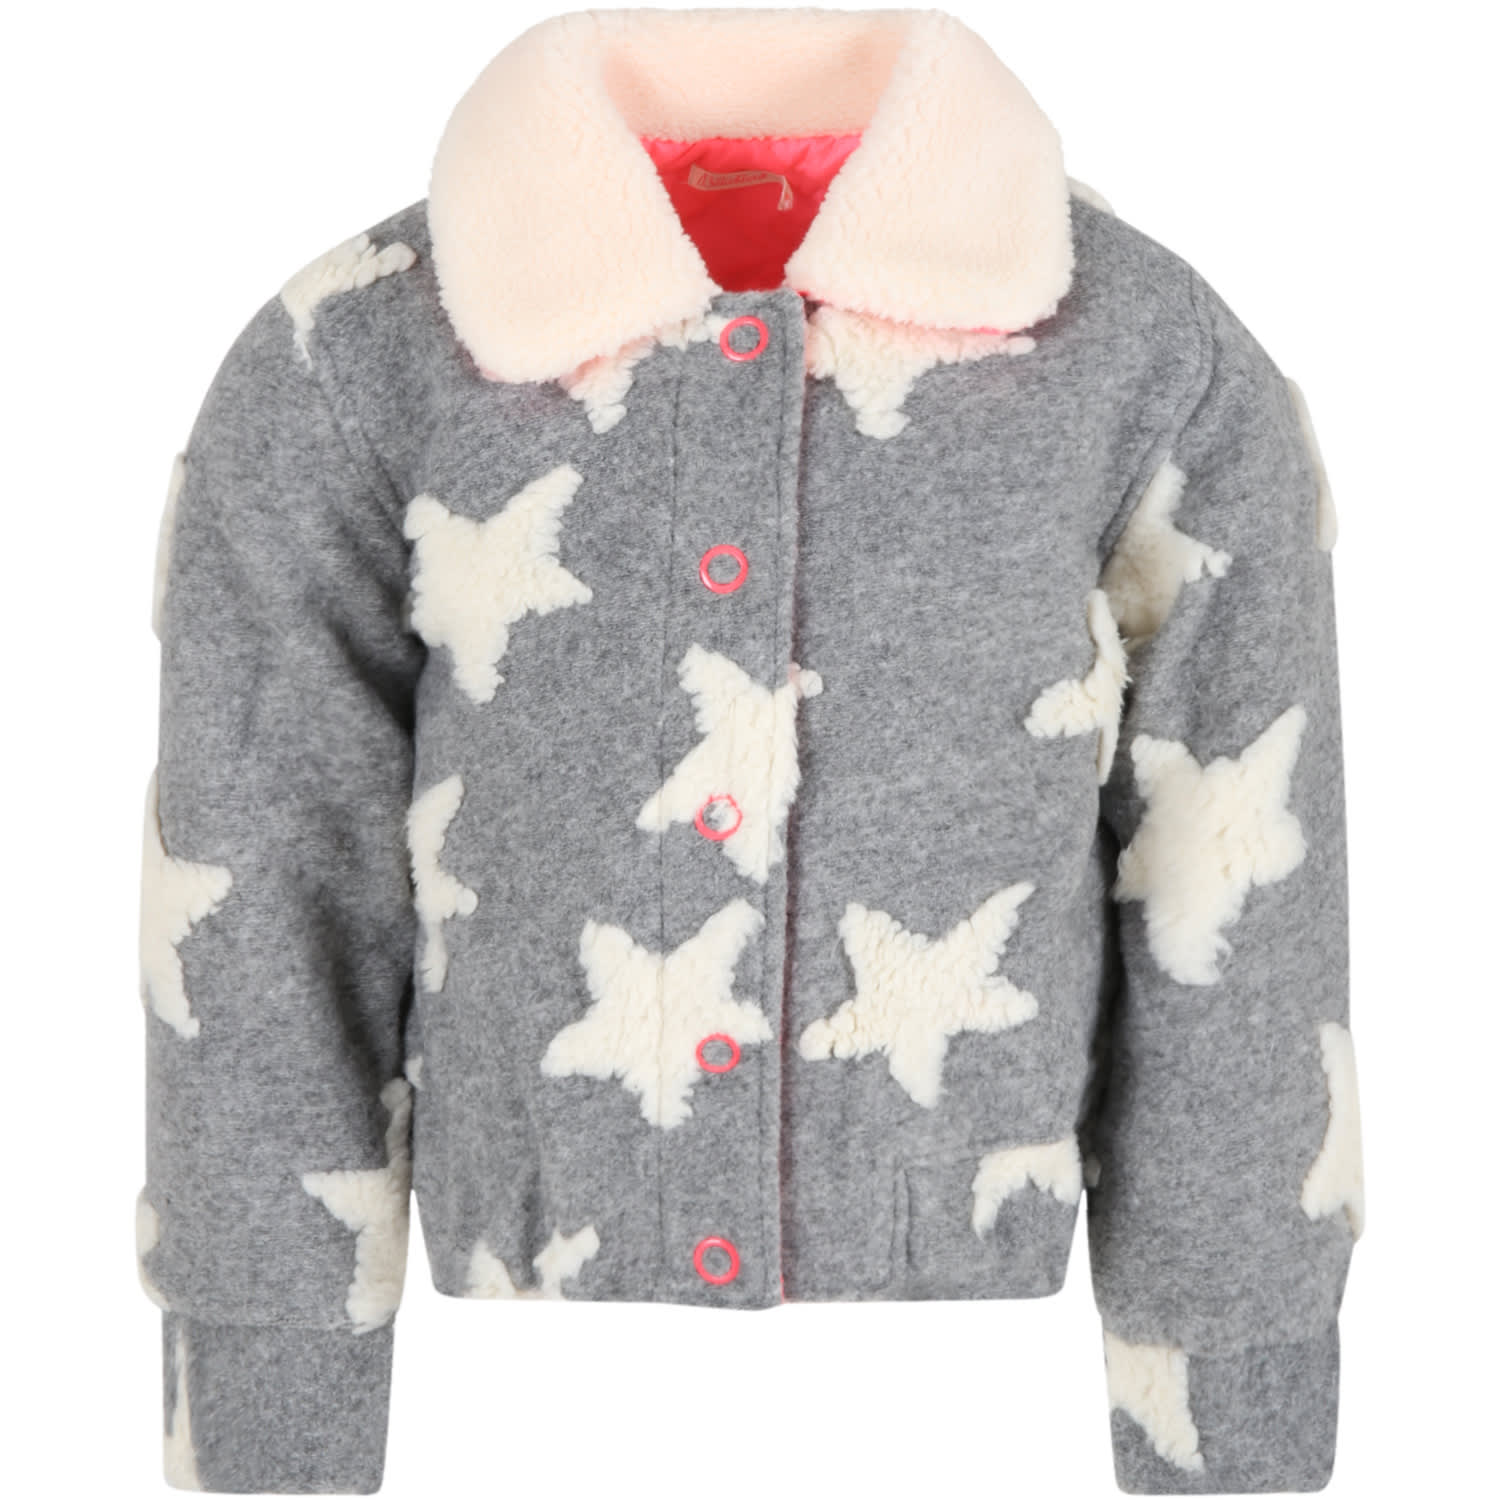 Grey Jacket For Girl With Stars